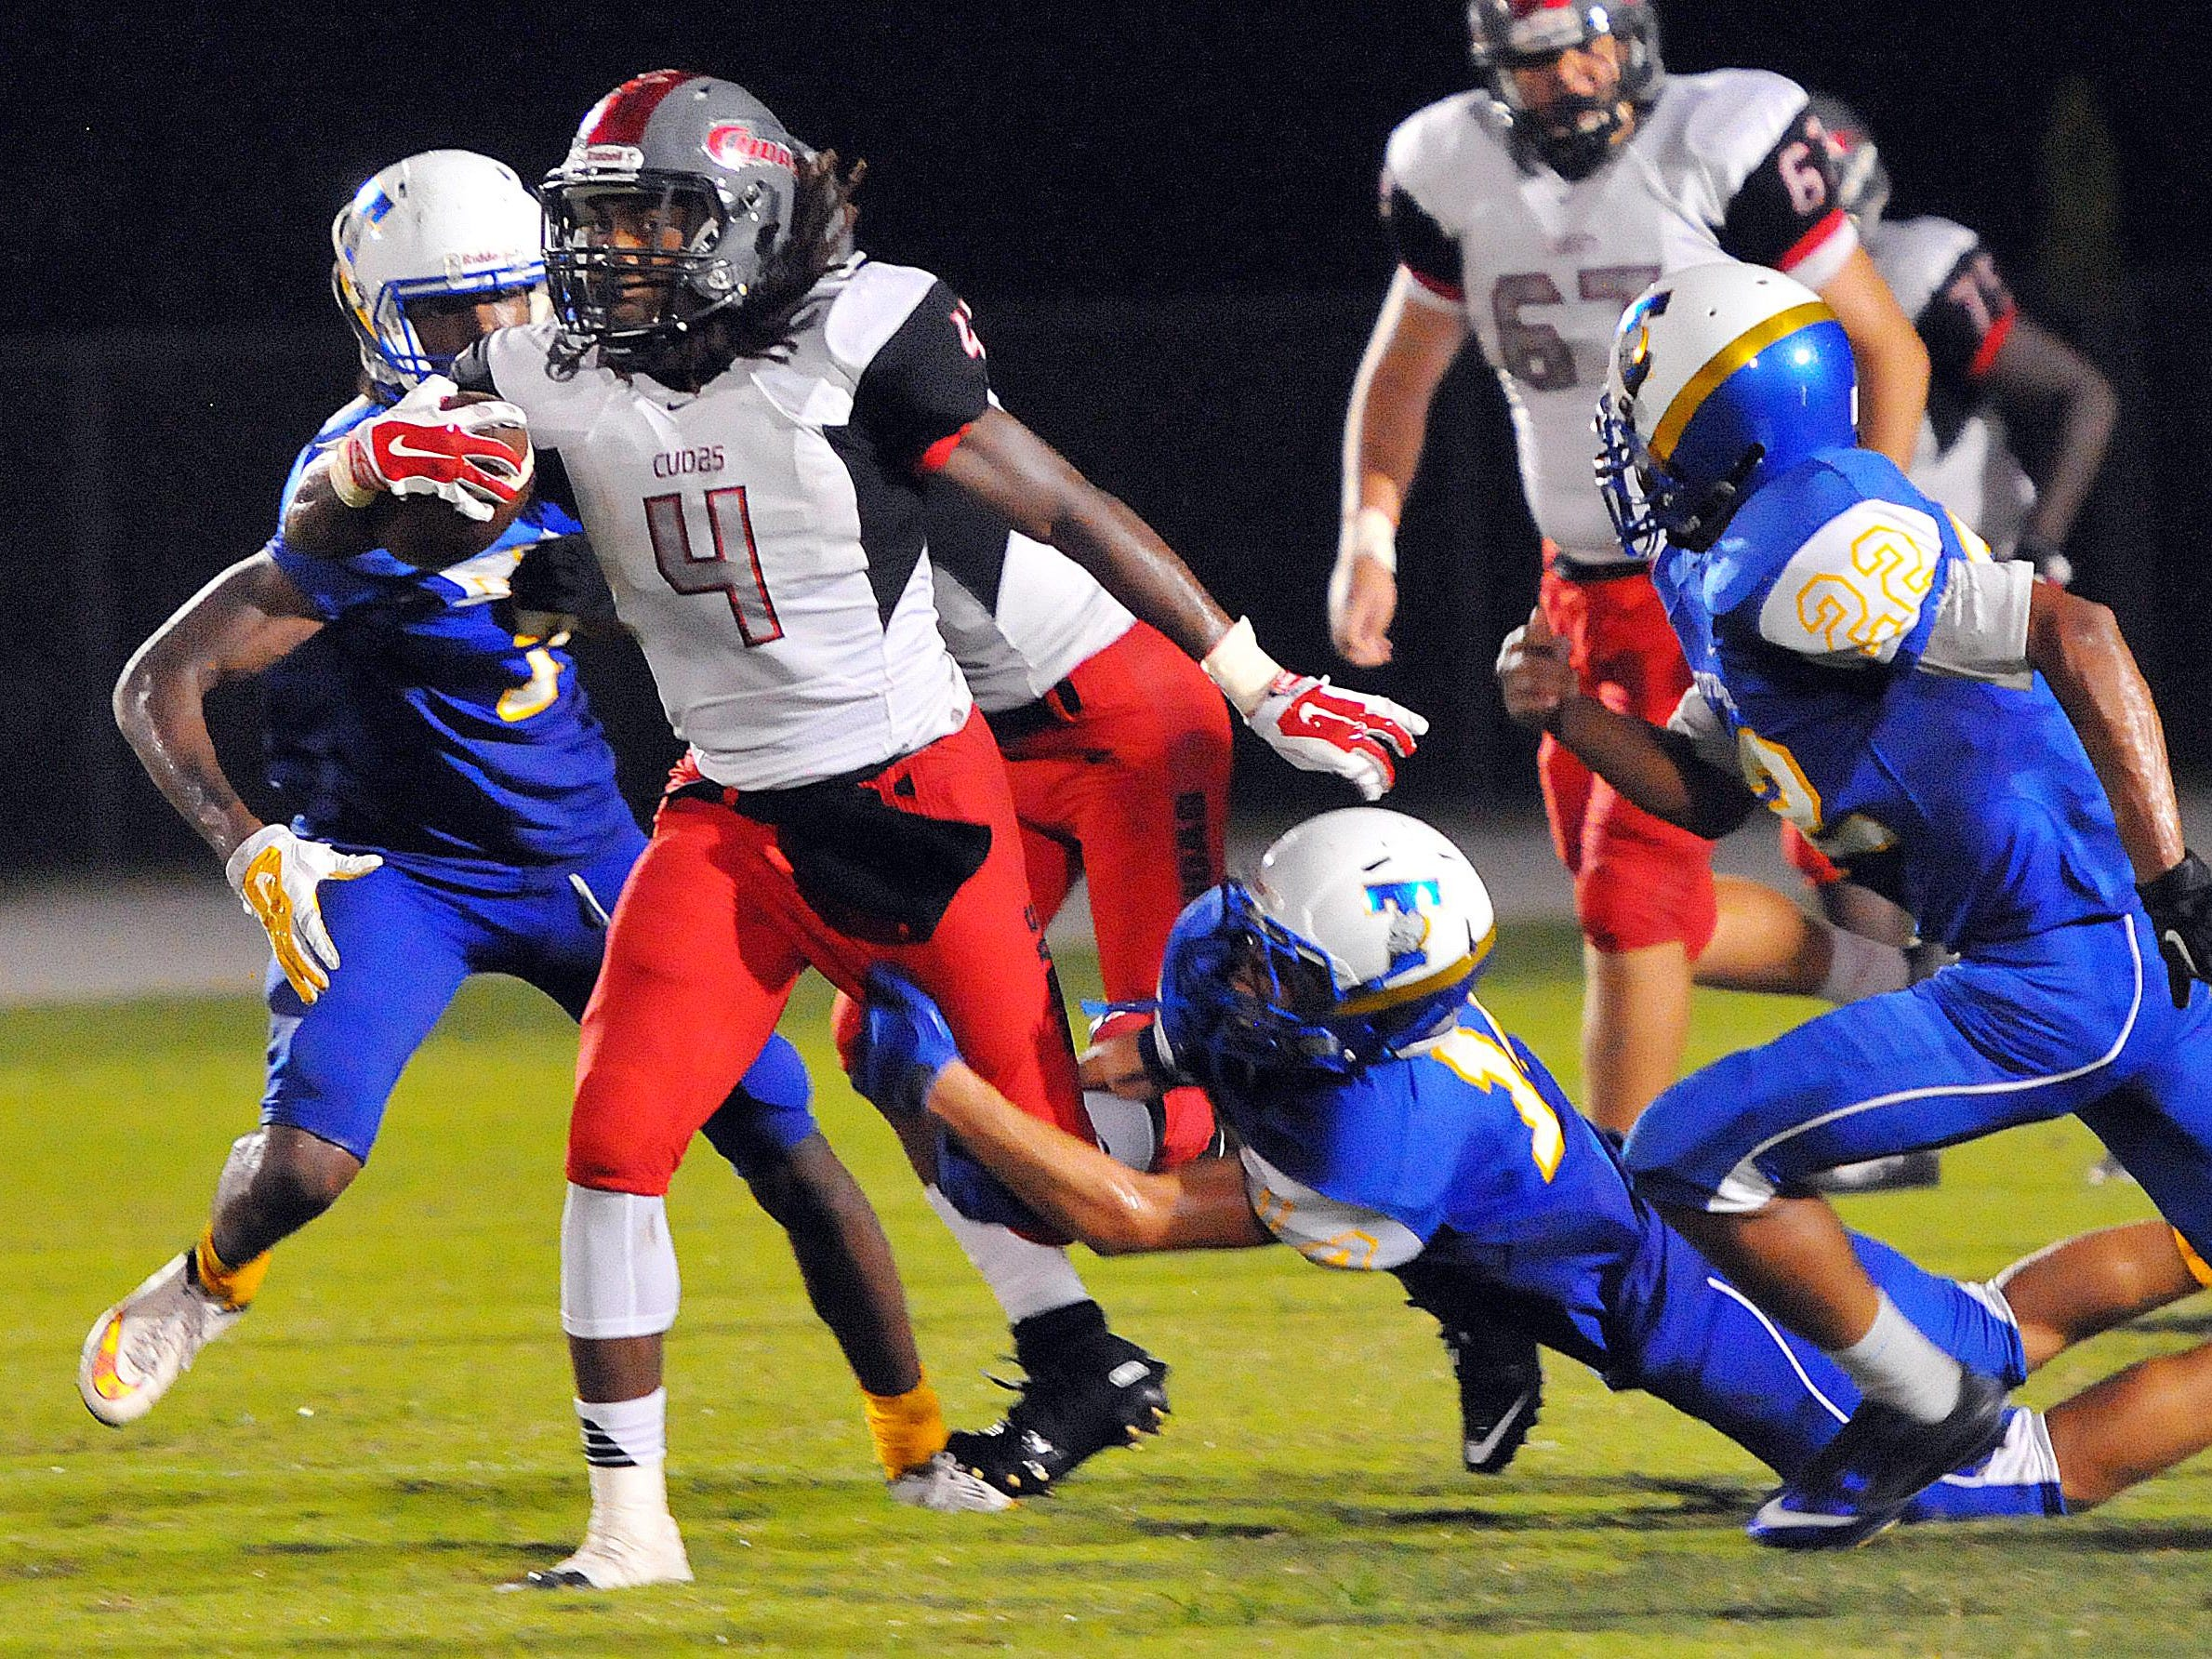 New Smyrna's Darrynton Evens picks up some hard-earned yards surrounded by a host of Titusville High defenders during Friday night's game at the Titusville High School.